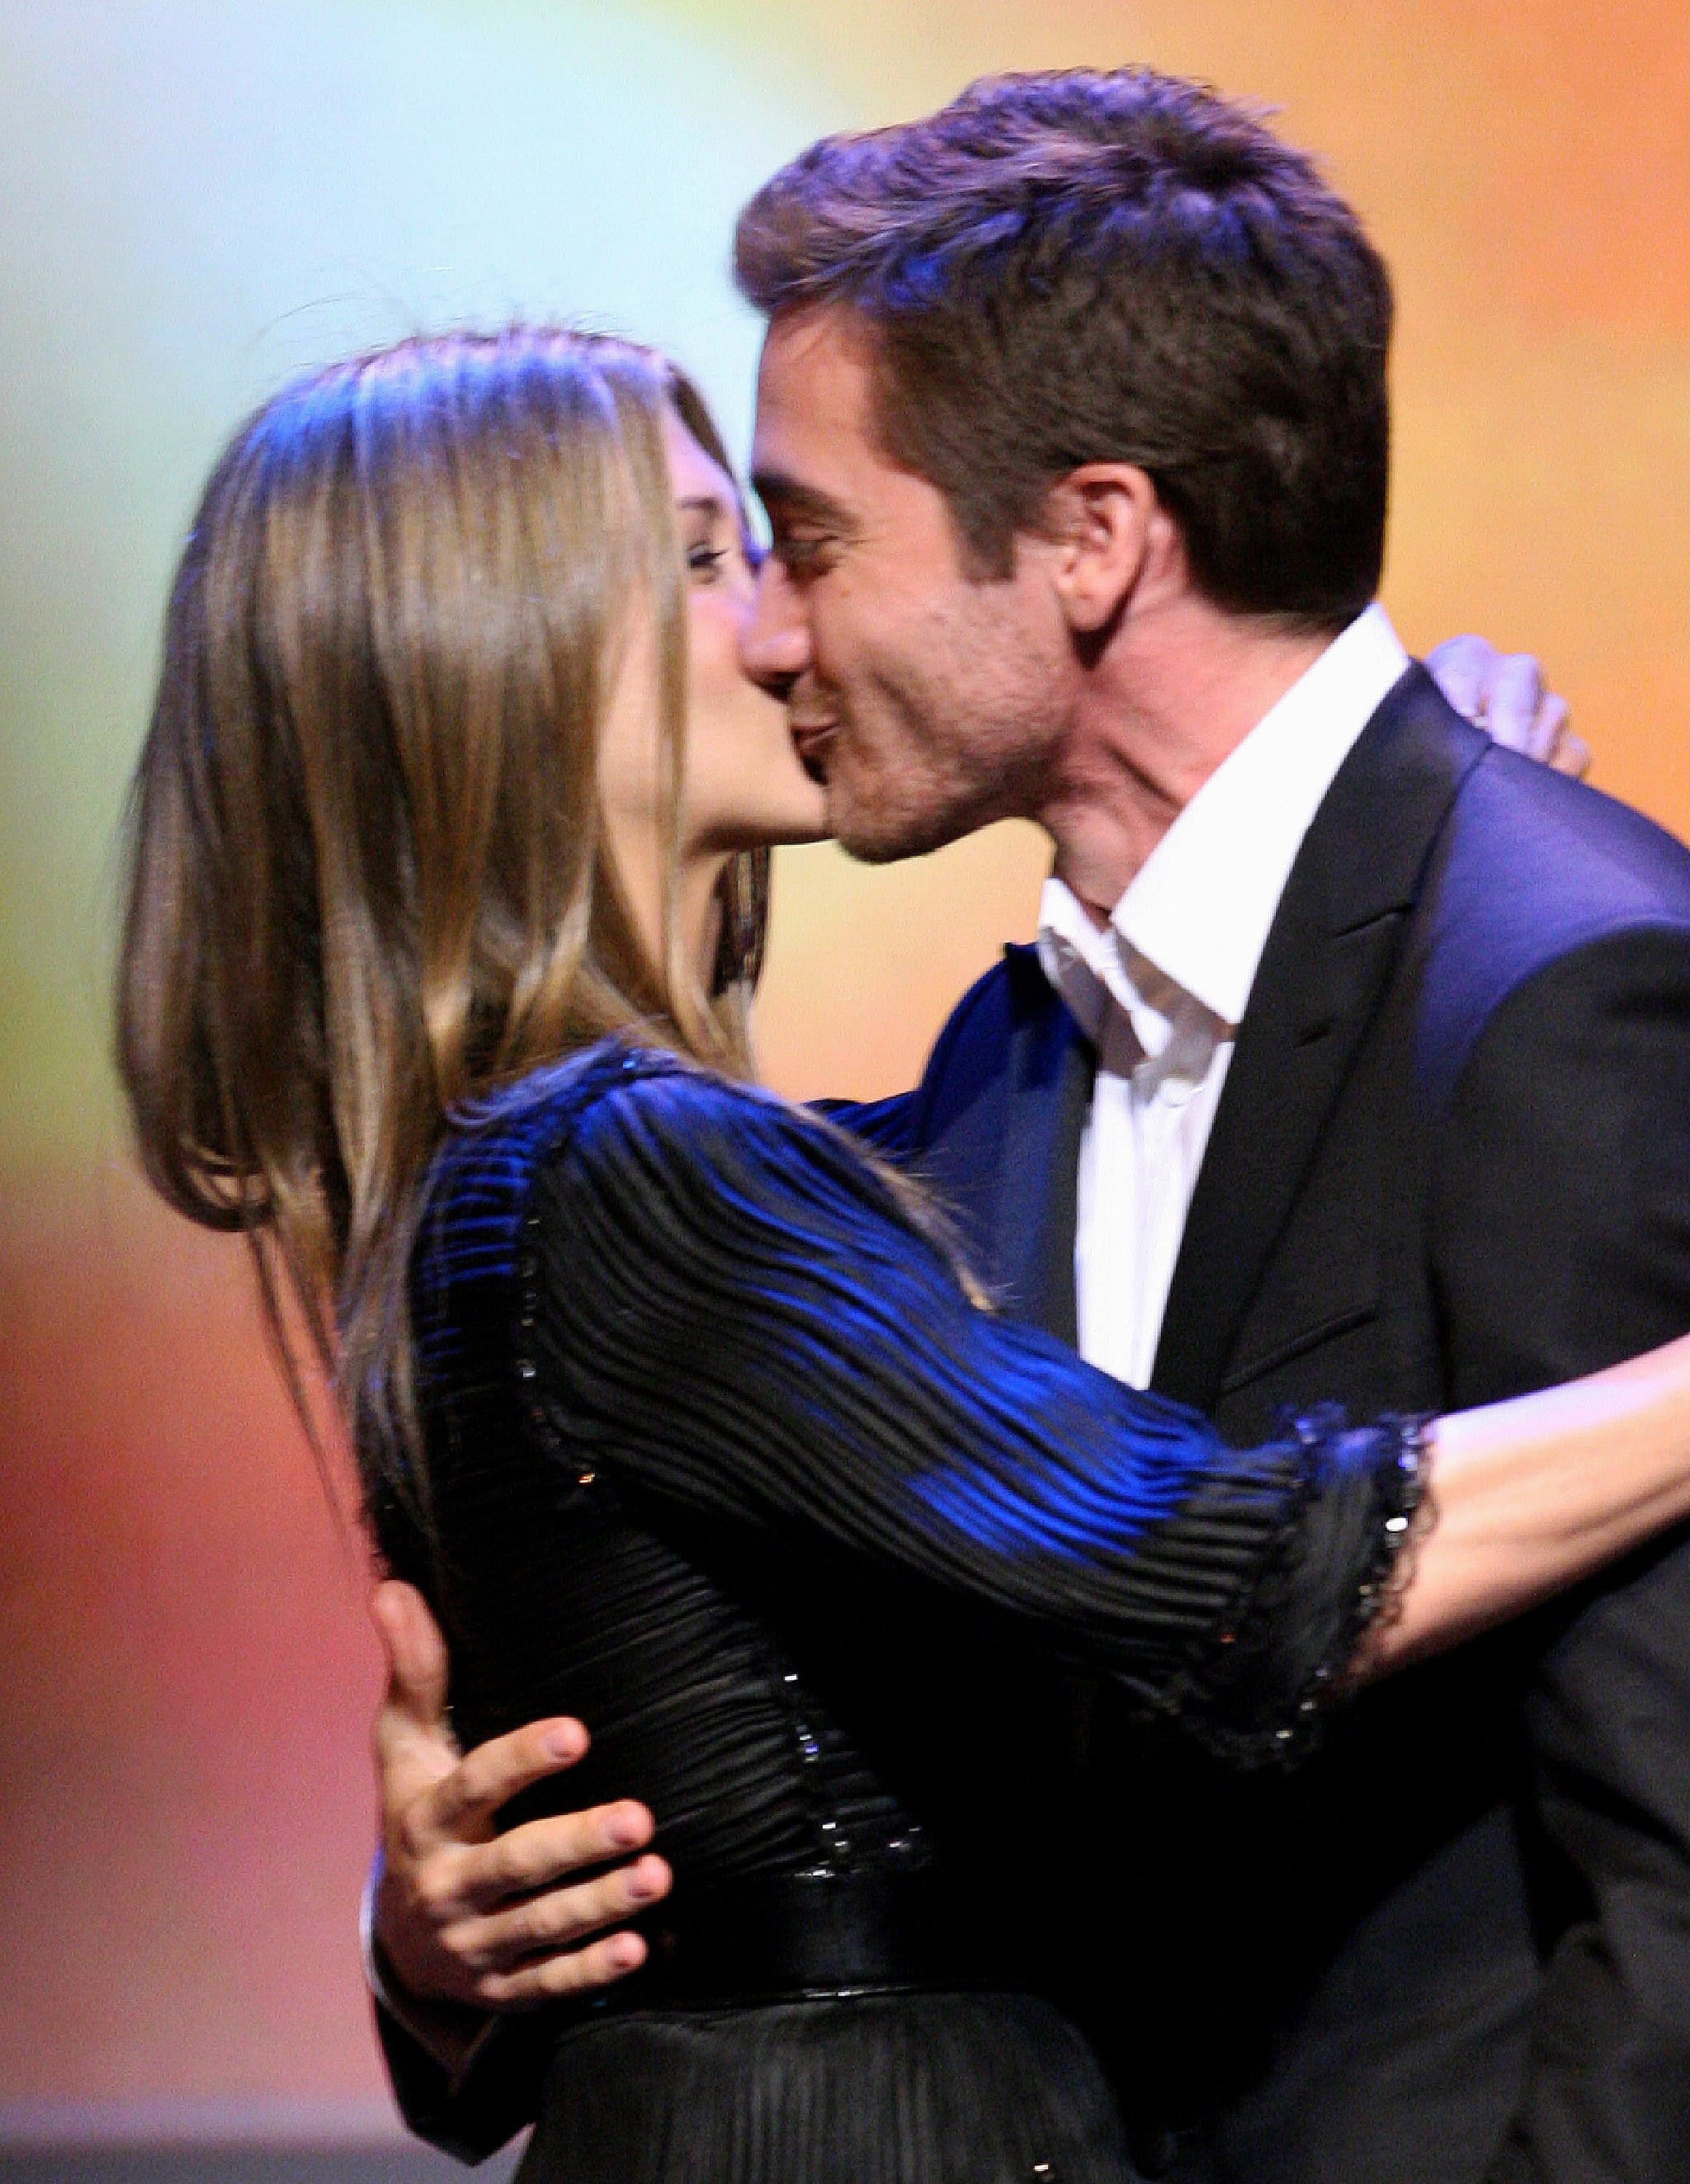 Jennifer Aniston shared a congratulatory kiss with Jake at the 2007 GLAAD Media Awards in LA.